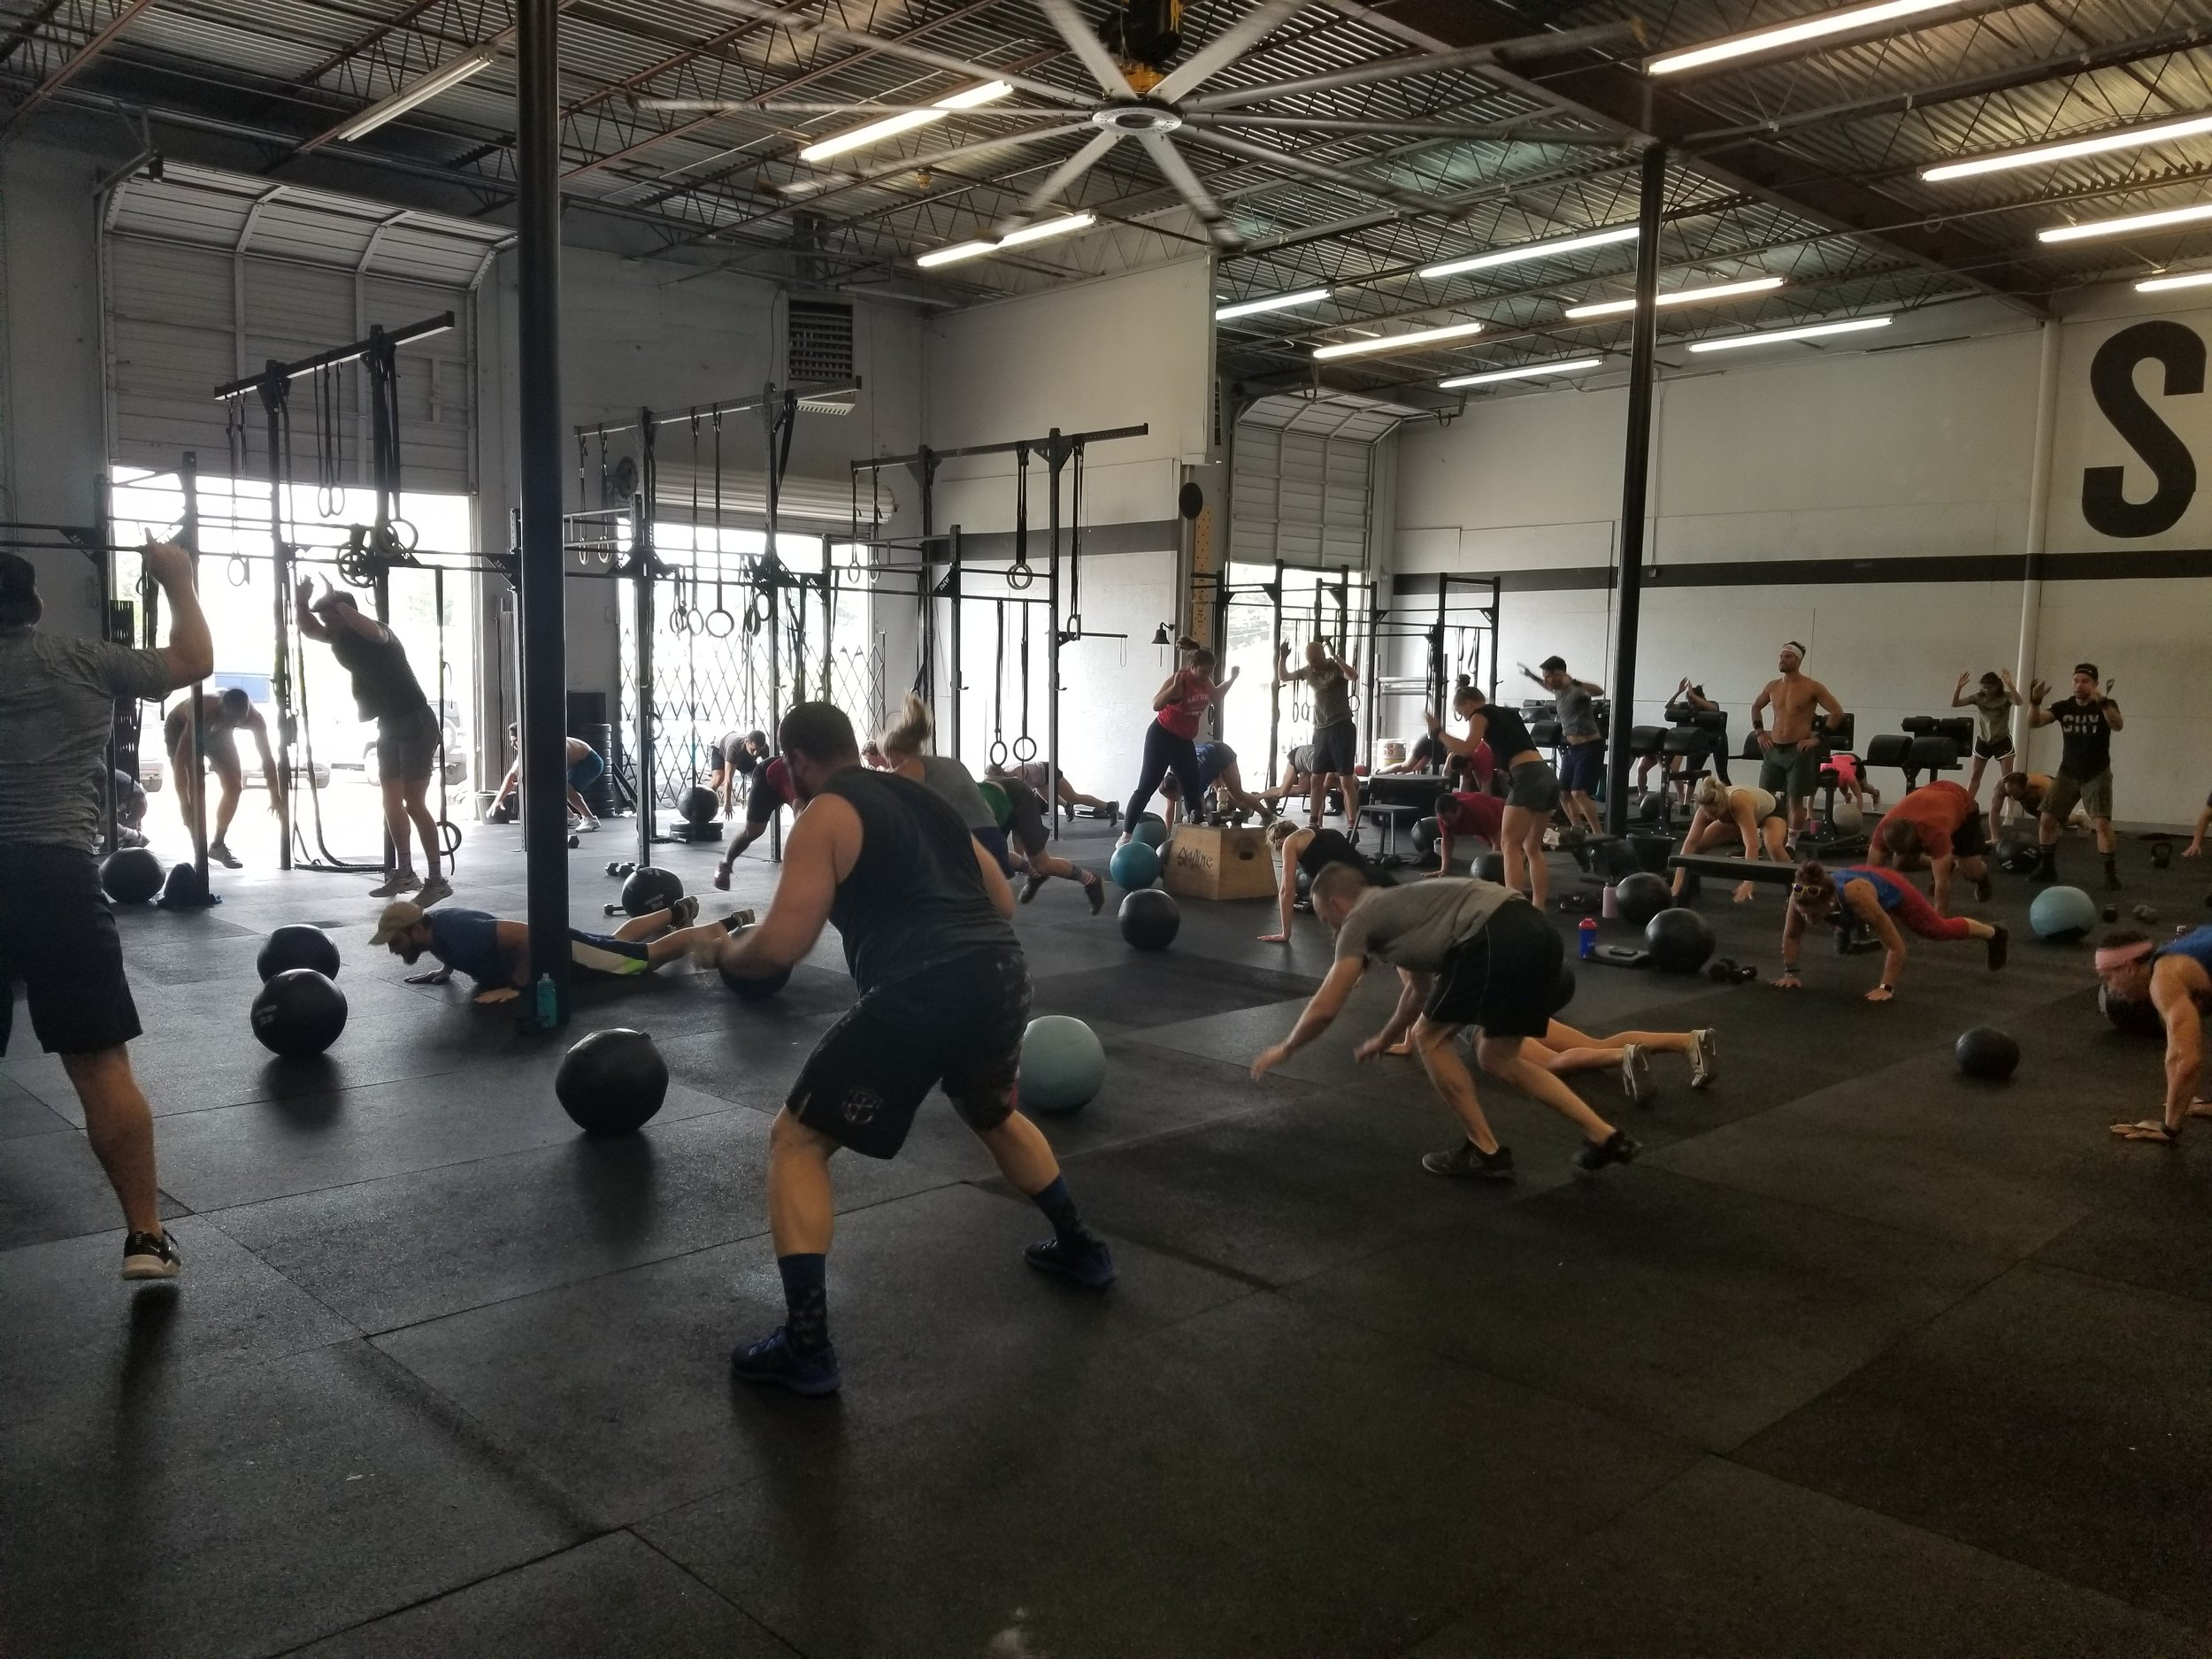 Burpees for everyone!